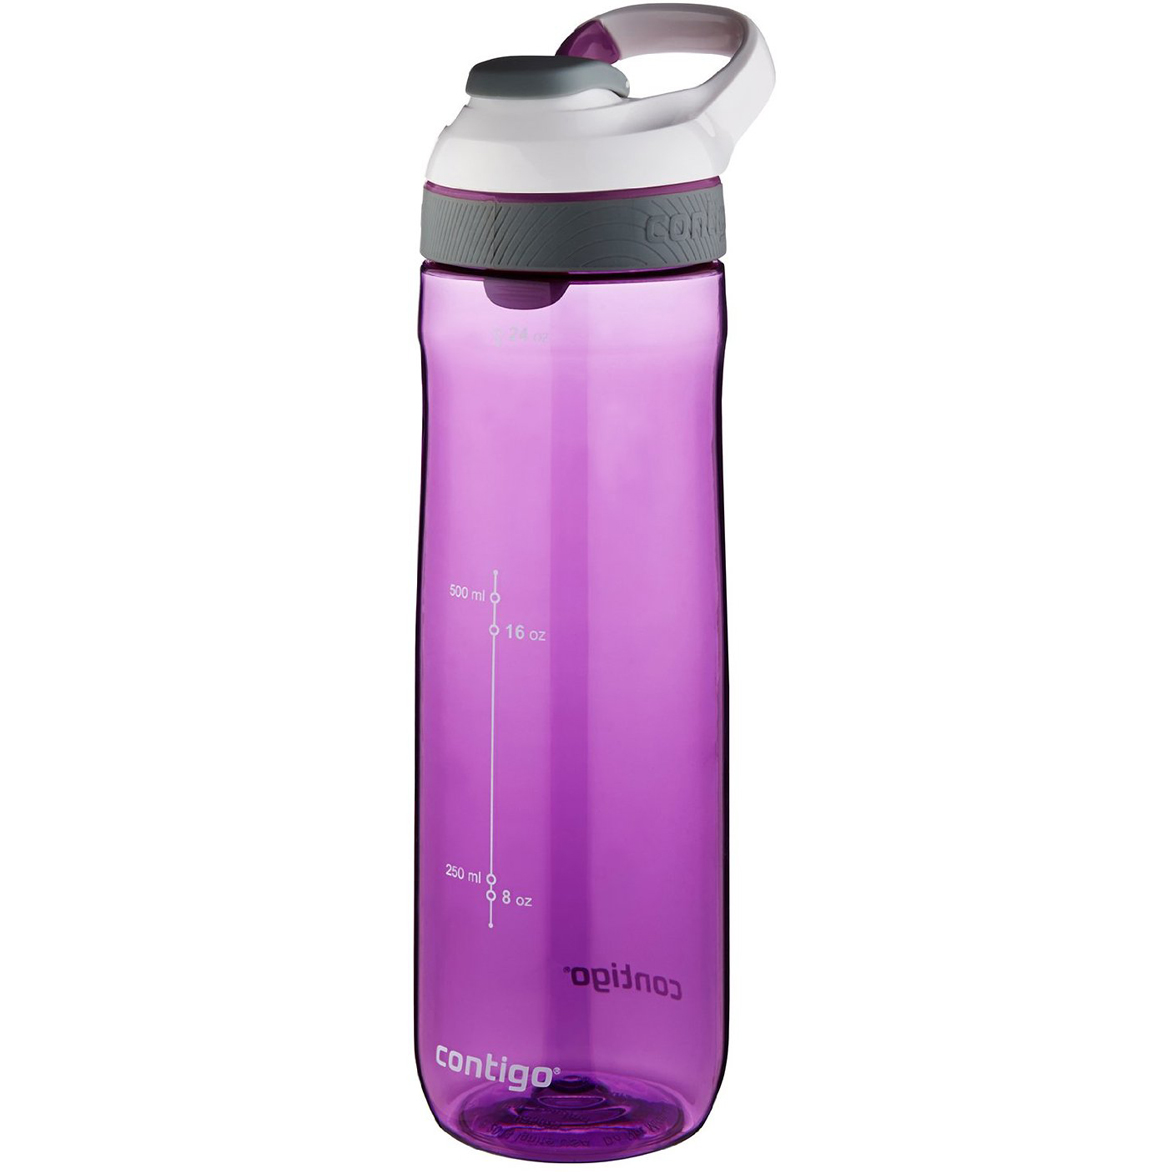 Contigo-24-oz-Cortland-Autoseal-Water-Bottle miniature 8